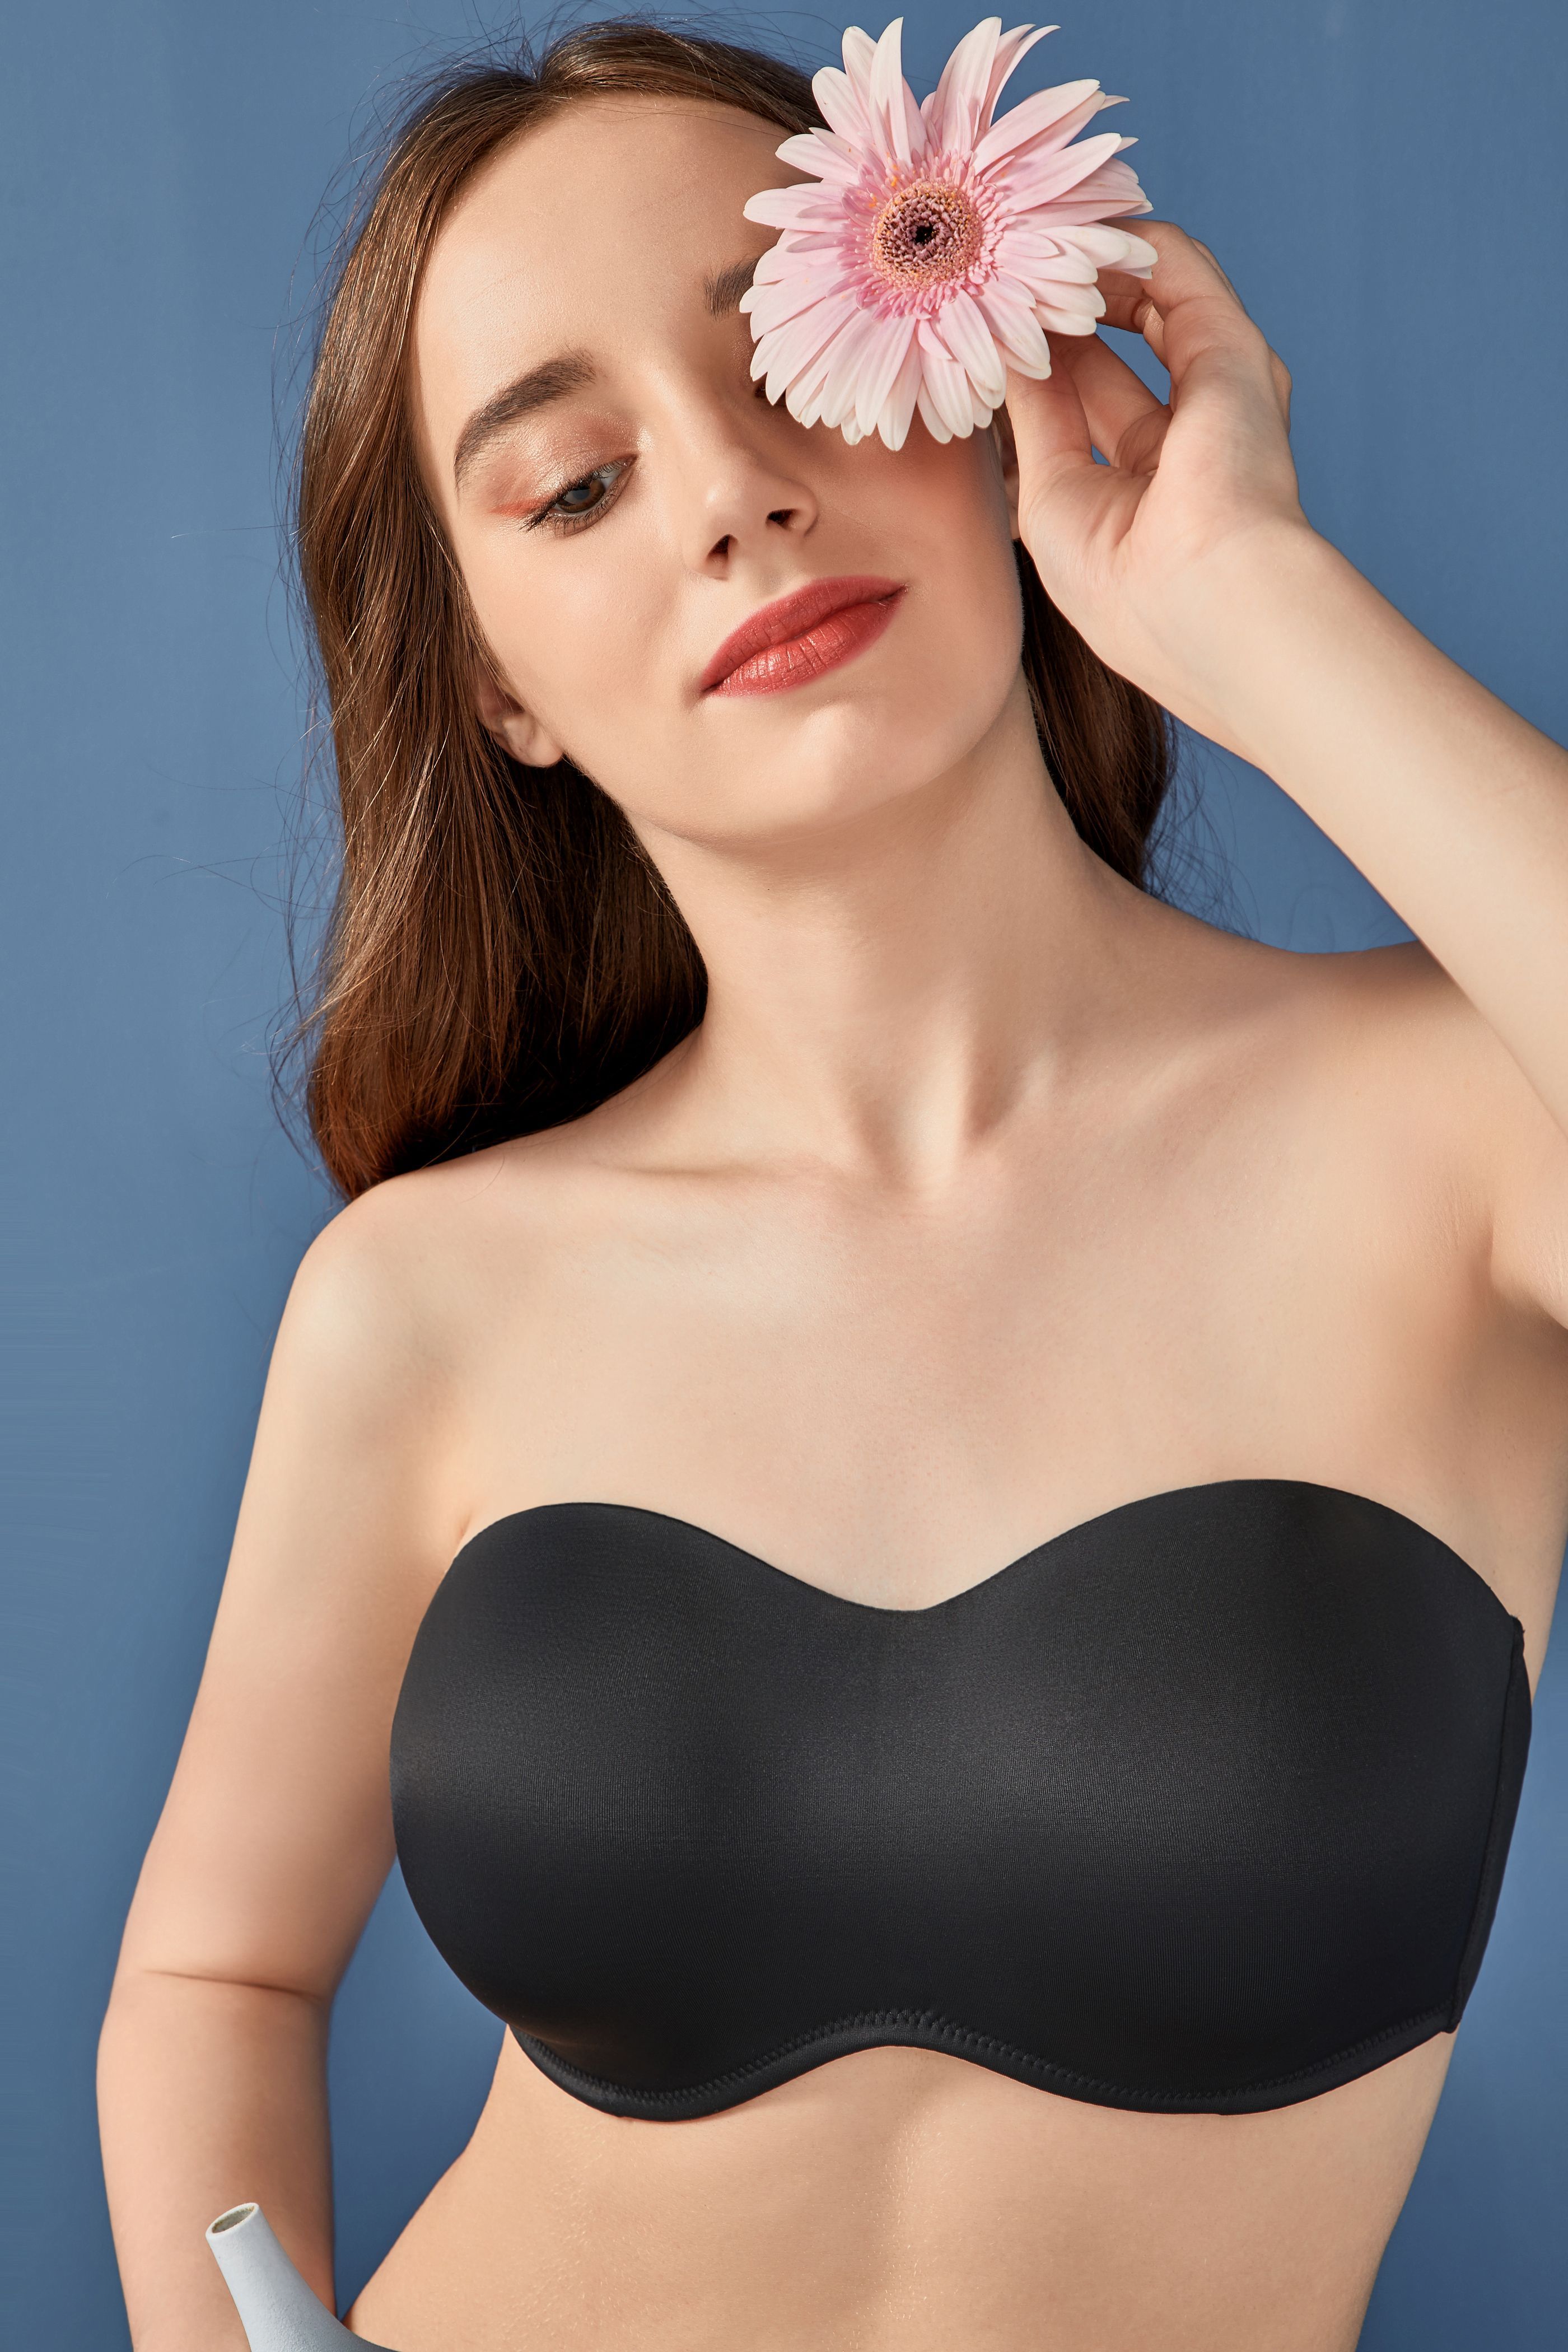 CALVENA Womens Seamless Invisible Underwire Minimizer Strapless Bra for Large Bust